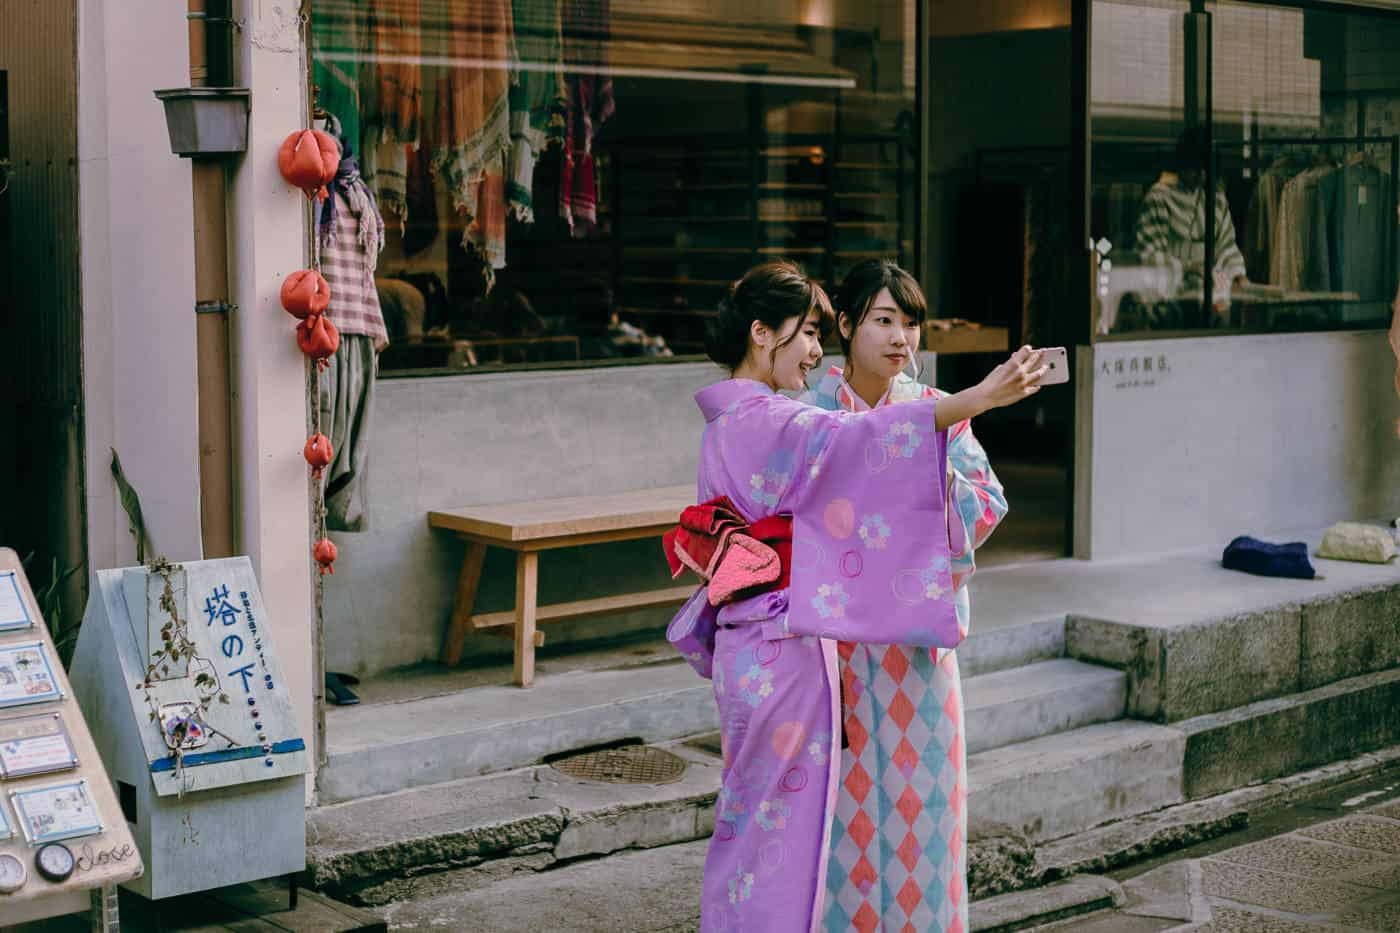 Women in traditional Japanese kimono in Kyoto Japan